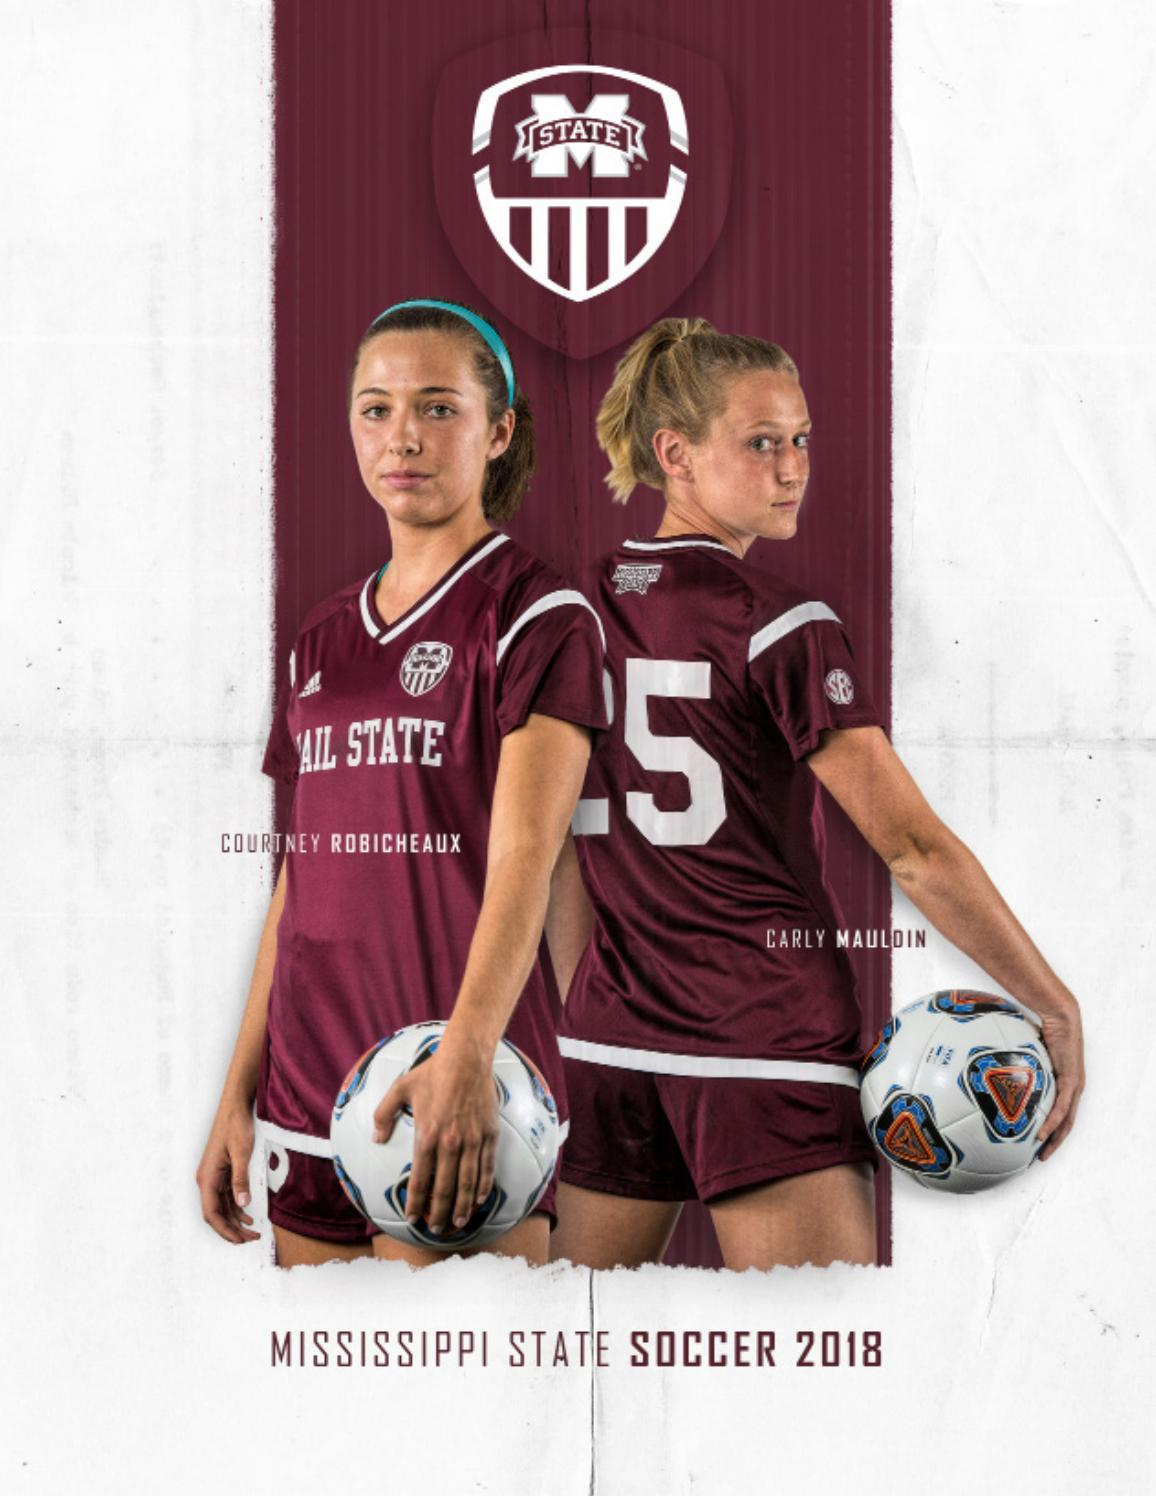 c5fc48dbf 2018 Mississippi State Soccer Media Guide by Mississippi State University  Athletics - issuu